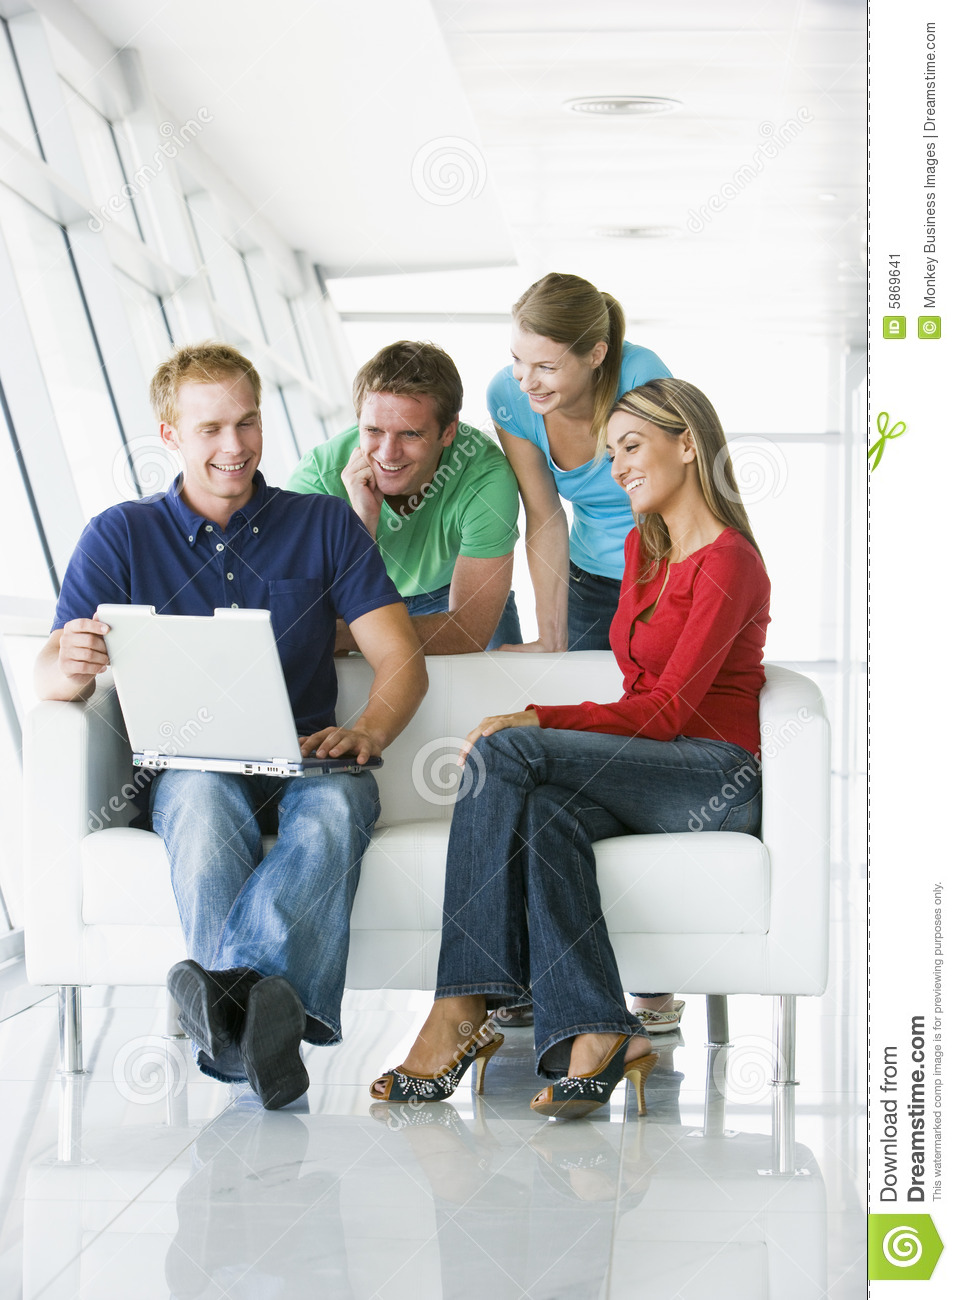 Four people in lobby looking at laptop smiling